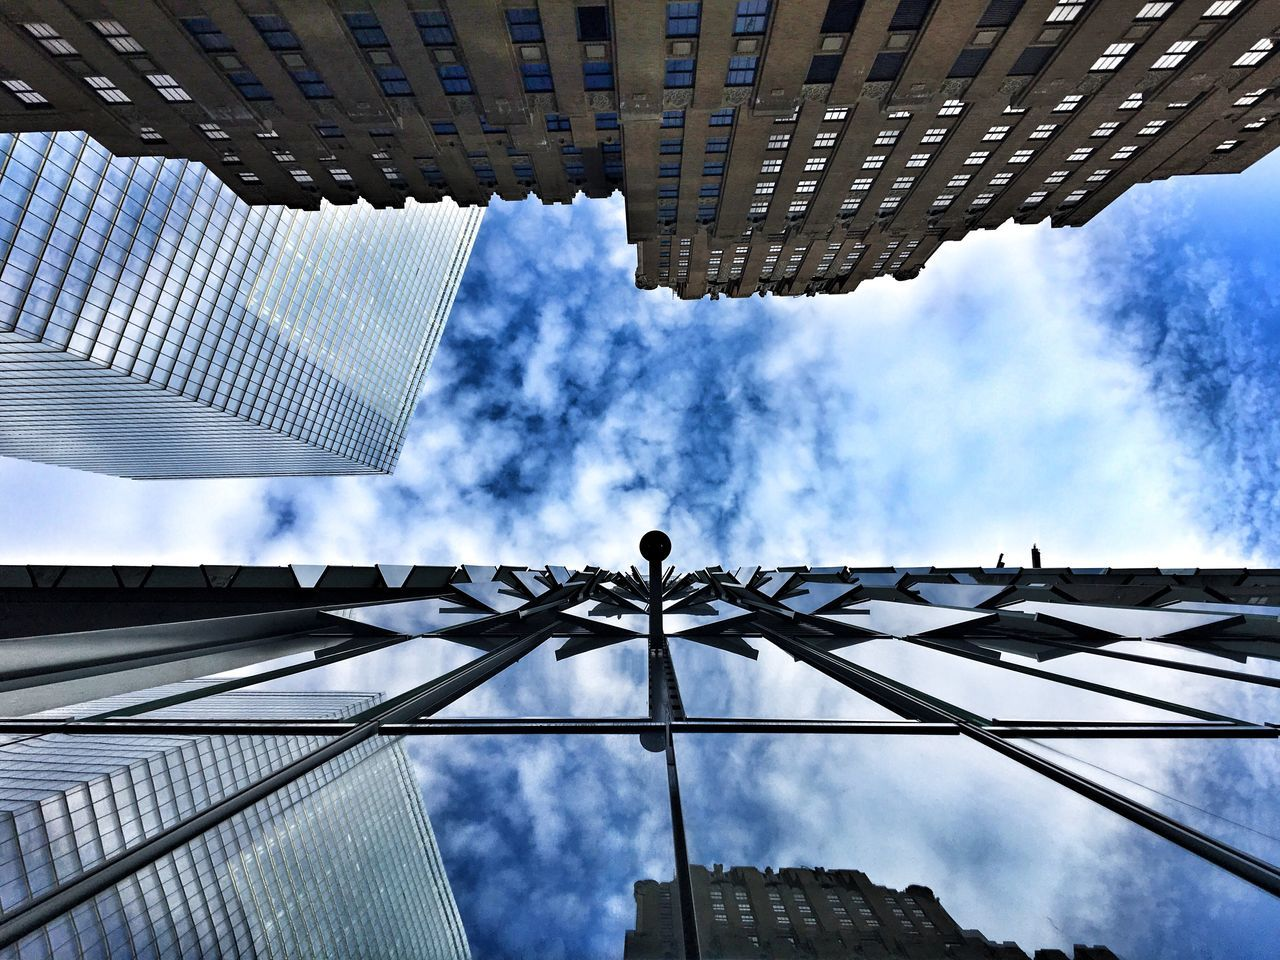 low angle view, architecture, cloud - sky, sky, built structure, building exterior, outdoors, day, no people, skyscraper, city